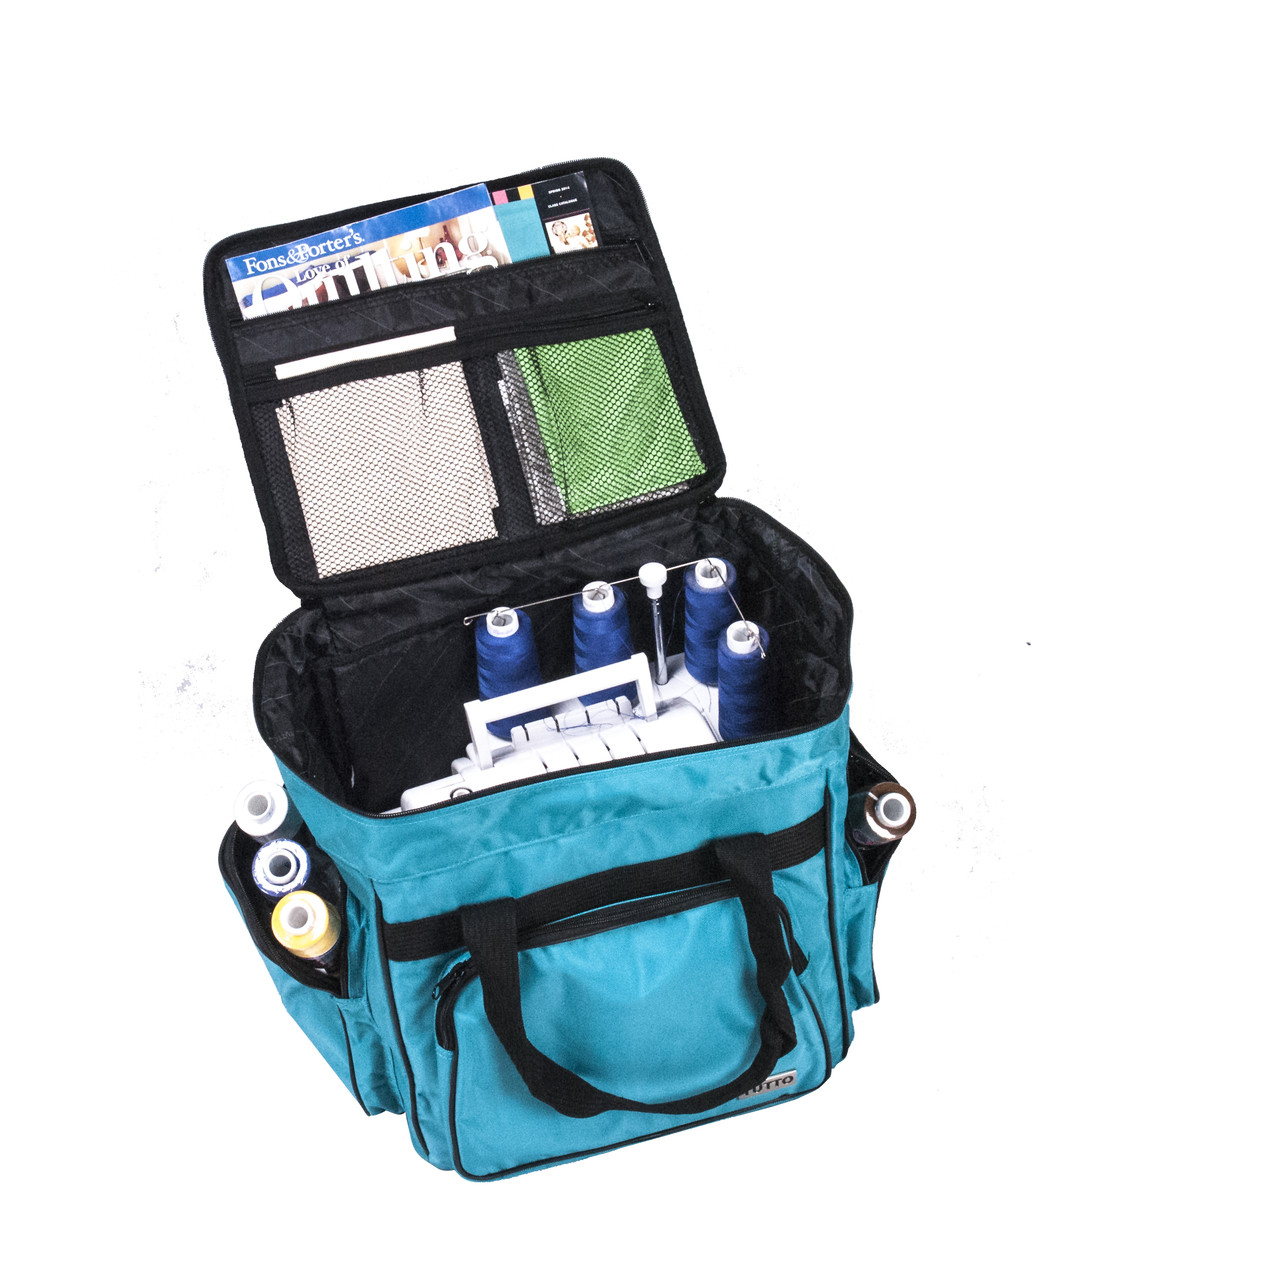 Holds small machine, serger and all your accessories